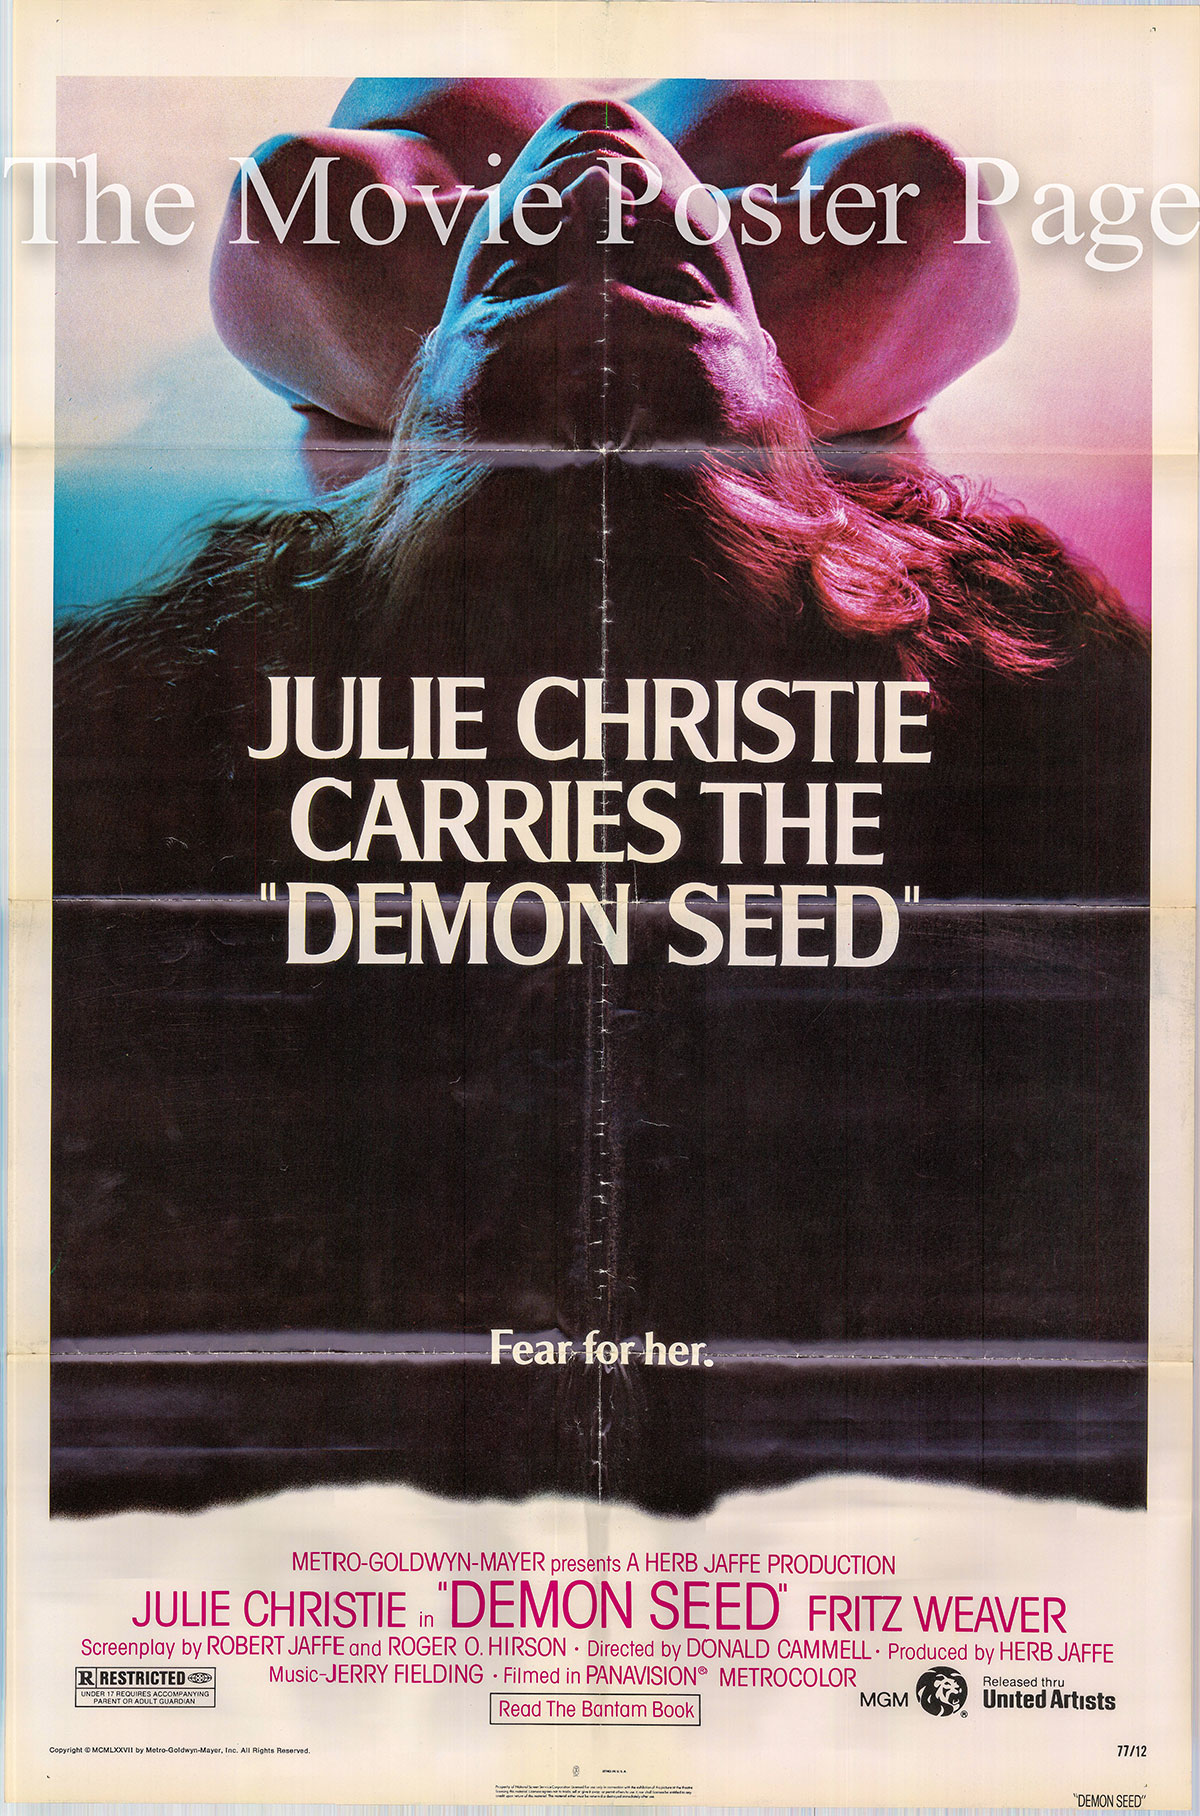 Pictured is a US one-sheet poster for the 1977 Donald Cammell film Demon Seed starring Julie Christie as Susan Harris.